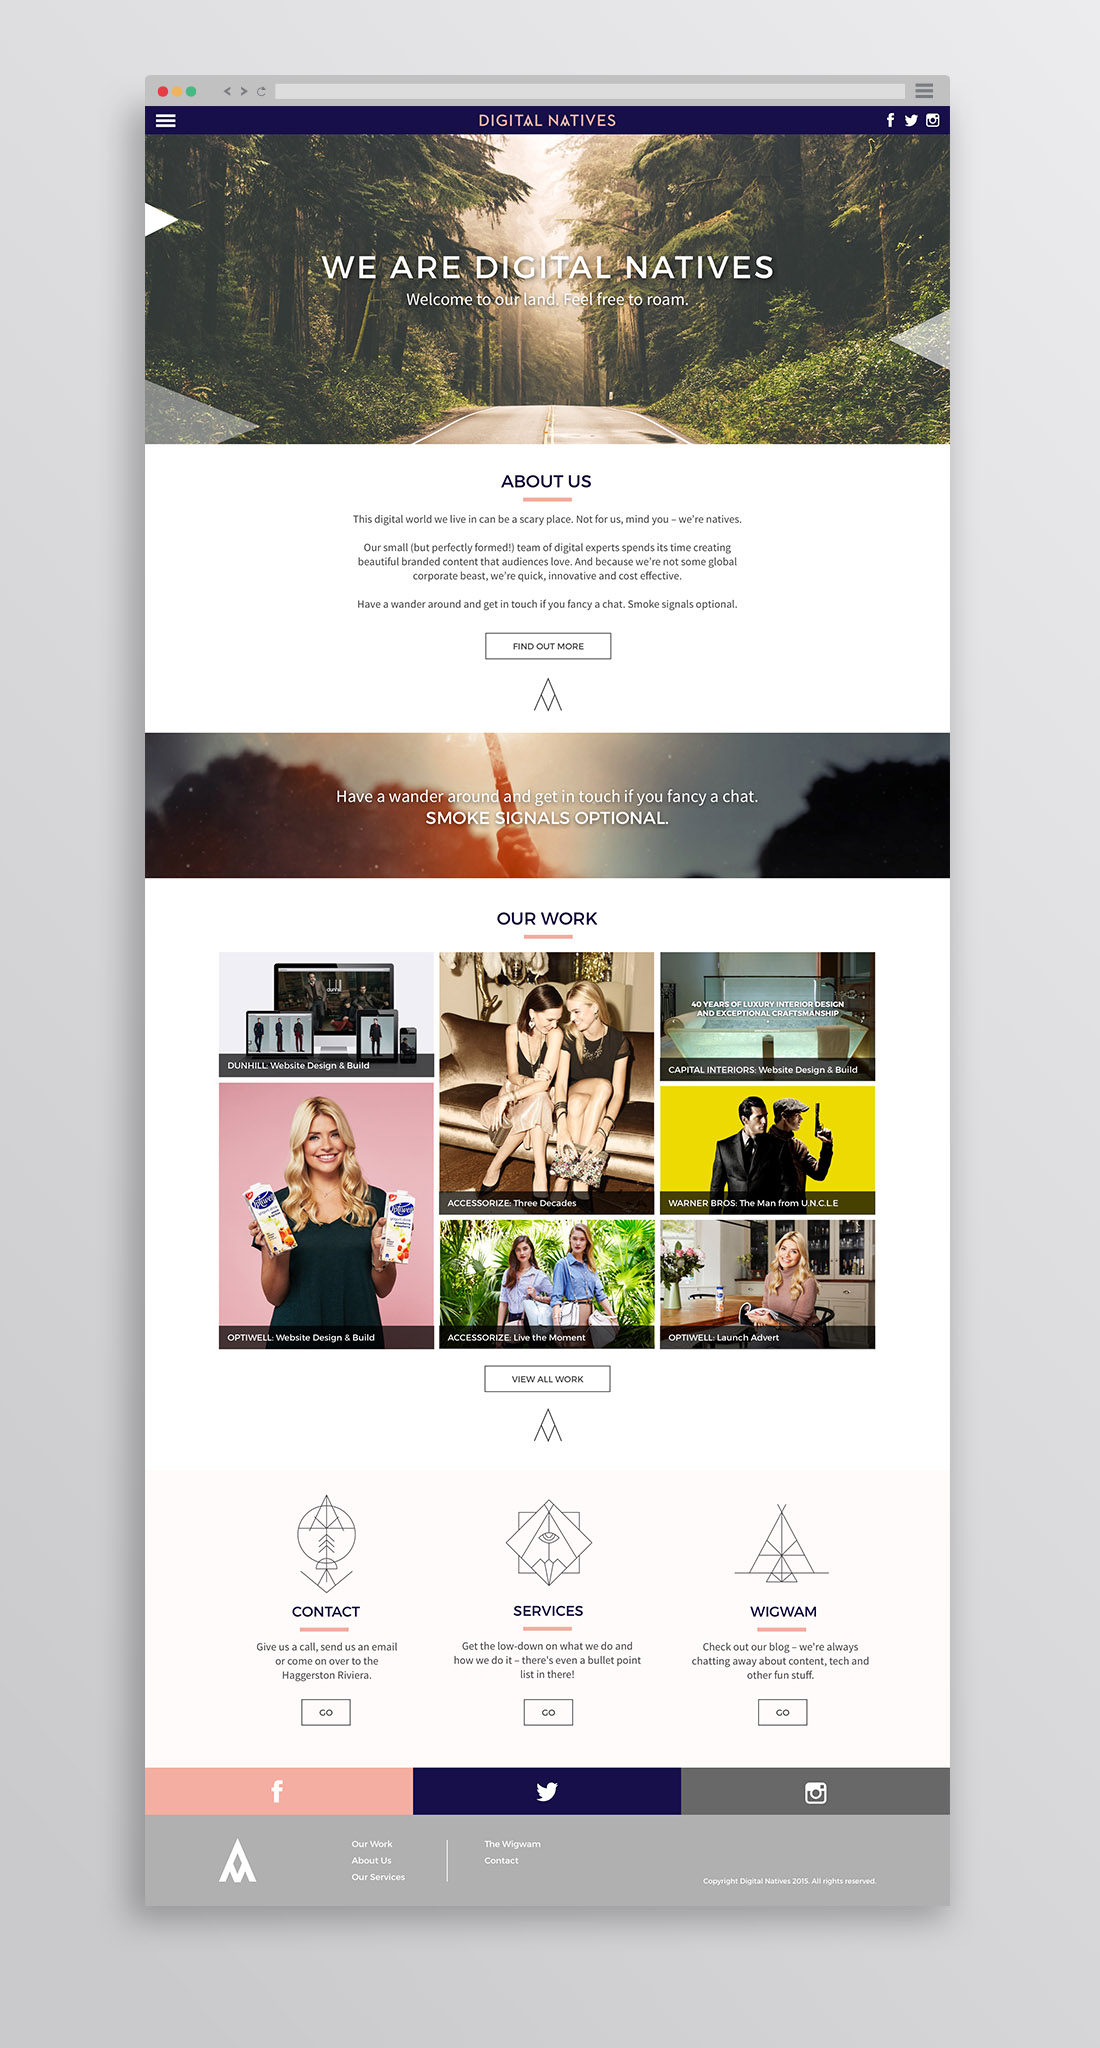 TinyBeastDesign-DigitalNatives-Homepage